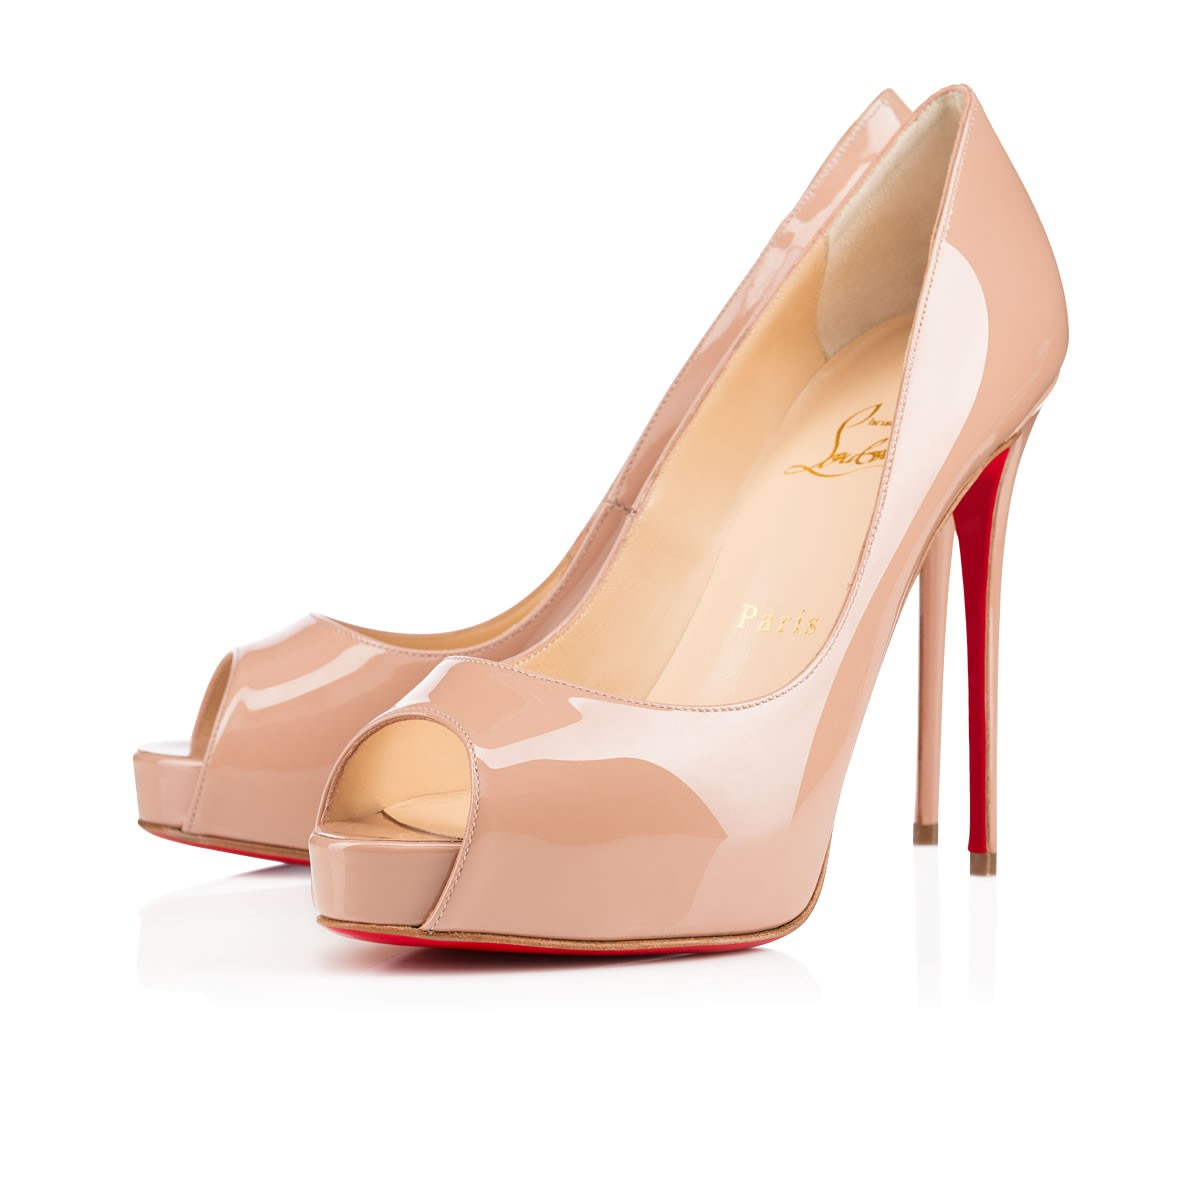 701f77185387 Christian Louboutin New Very Prive 120 Patent Leather Peep Toe Pumps In Nude